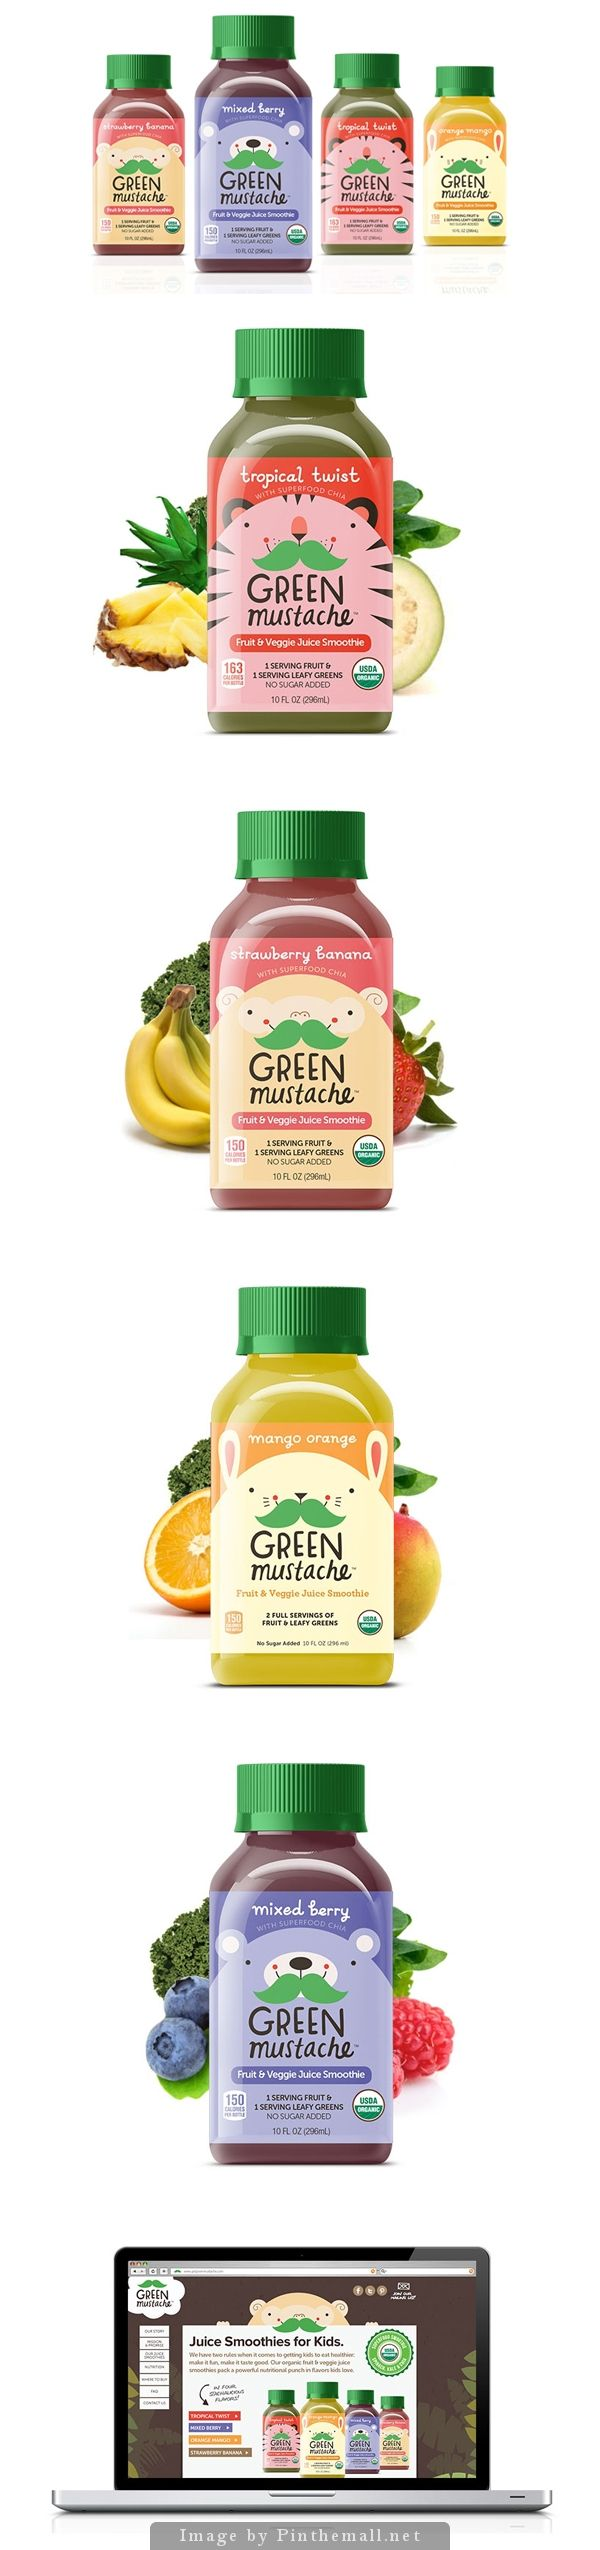 Green Mustache kids #smoothie #packaging by Motto - http://www.packagingoftheworld.com/2014/10/green-mustache.html